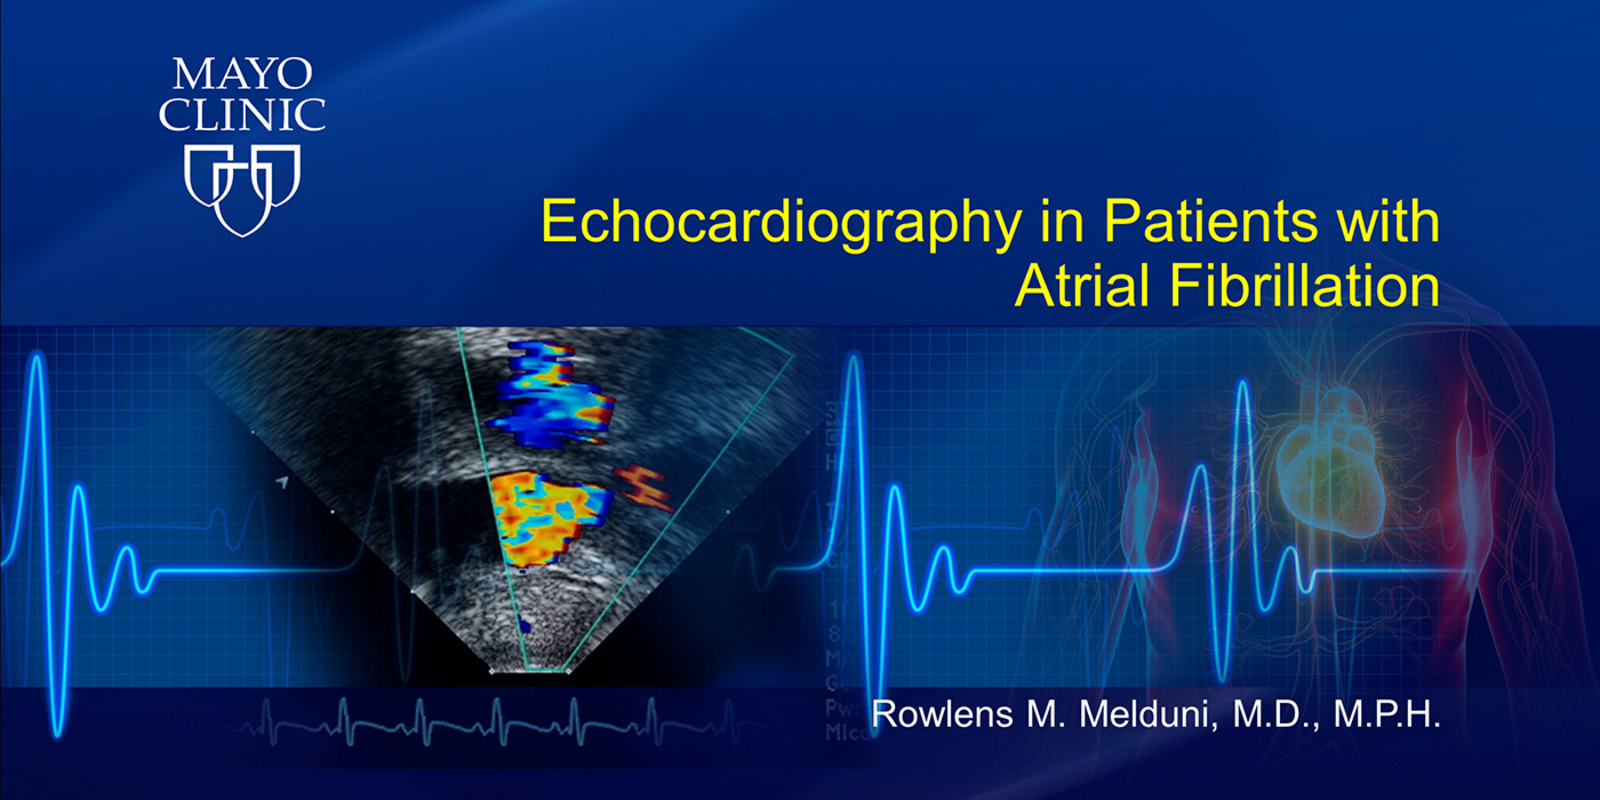 Echocardiography in Patients with Atrial Fibrillation